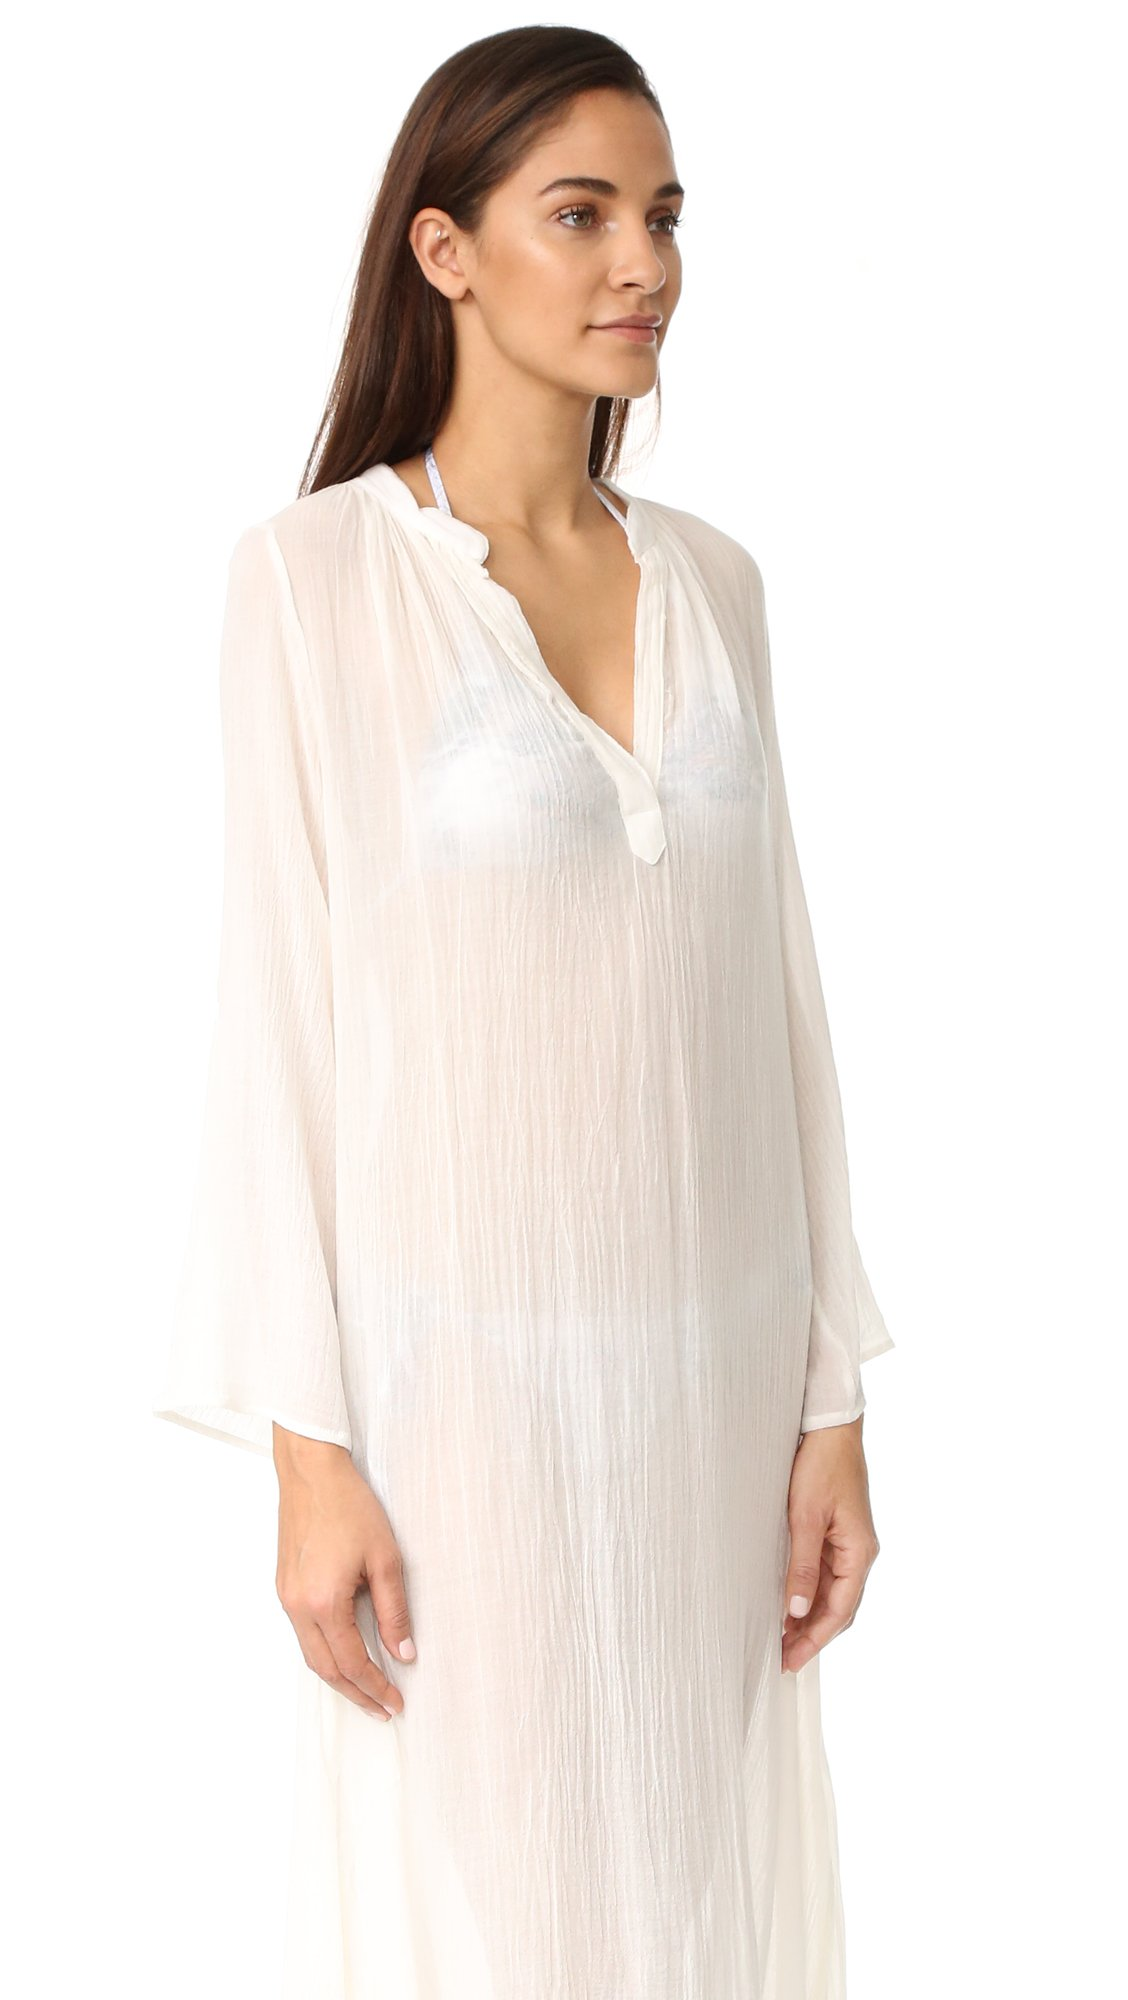 Eberjey Women's Summer Of Love Haven Cover Up Dress, Cloud, S/M by Eberjey (Image #3)